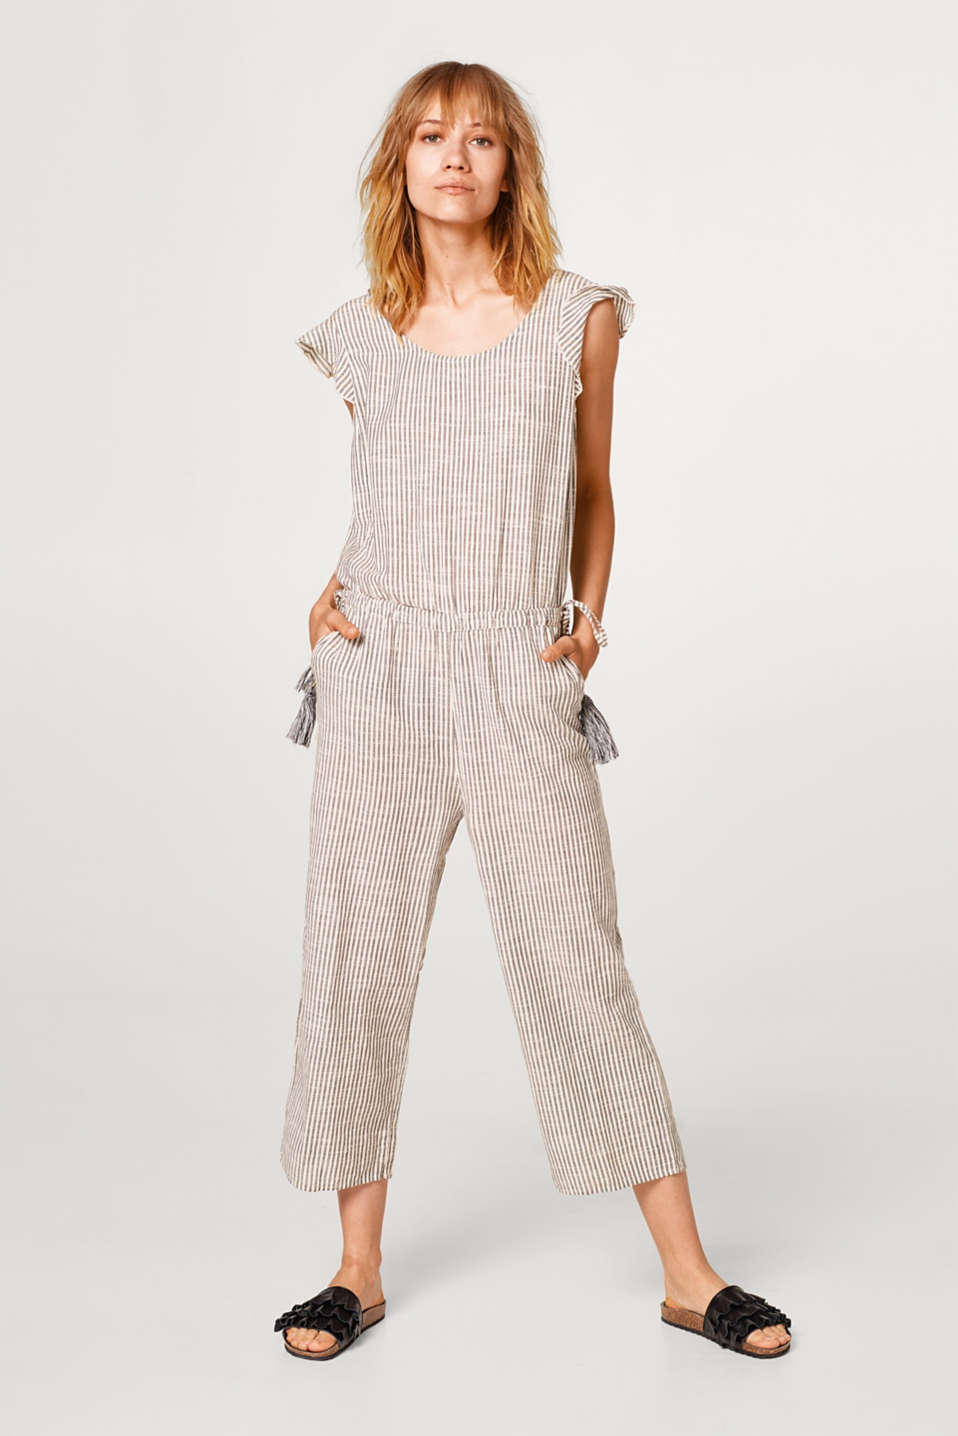 Jumpsuit with frills and tassels, 100% cotton